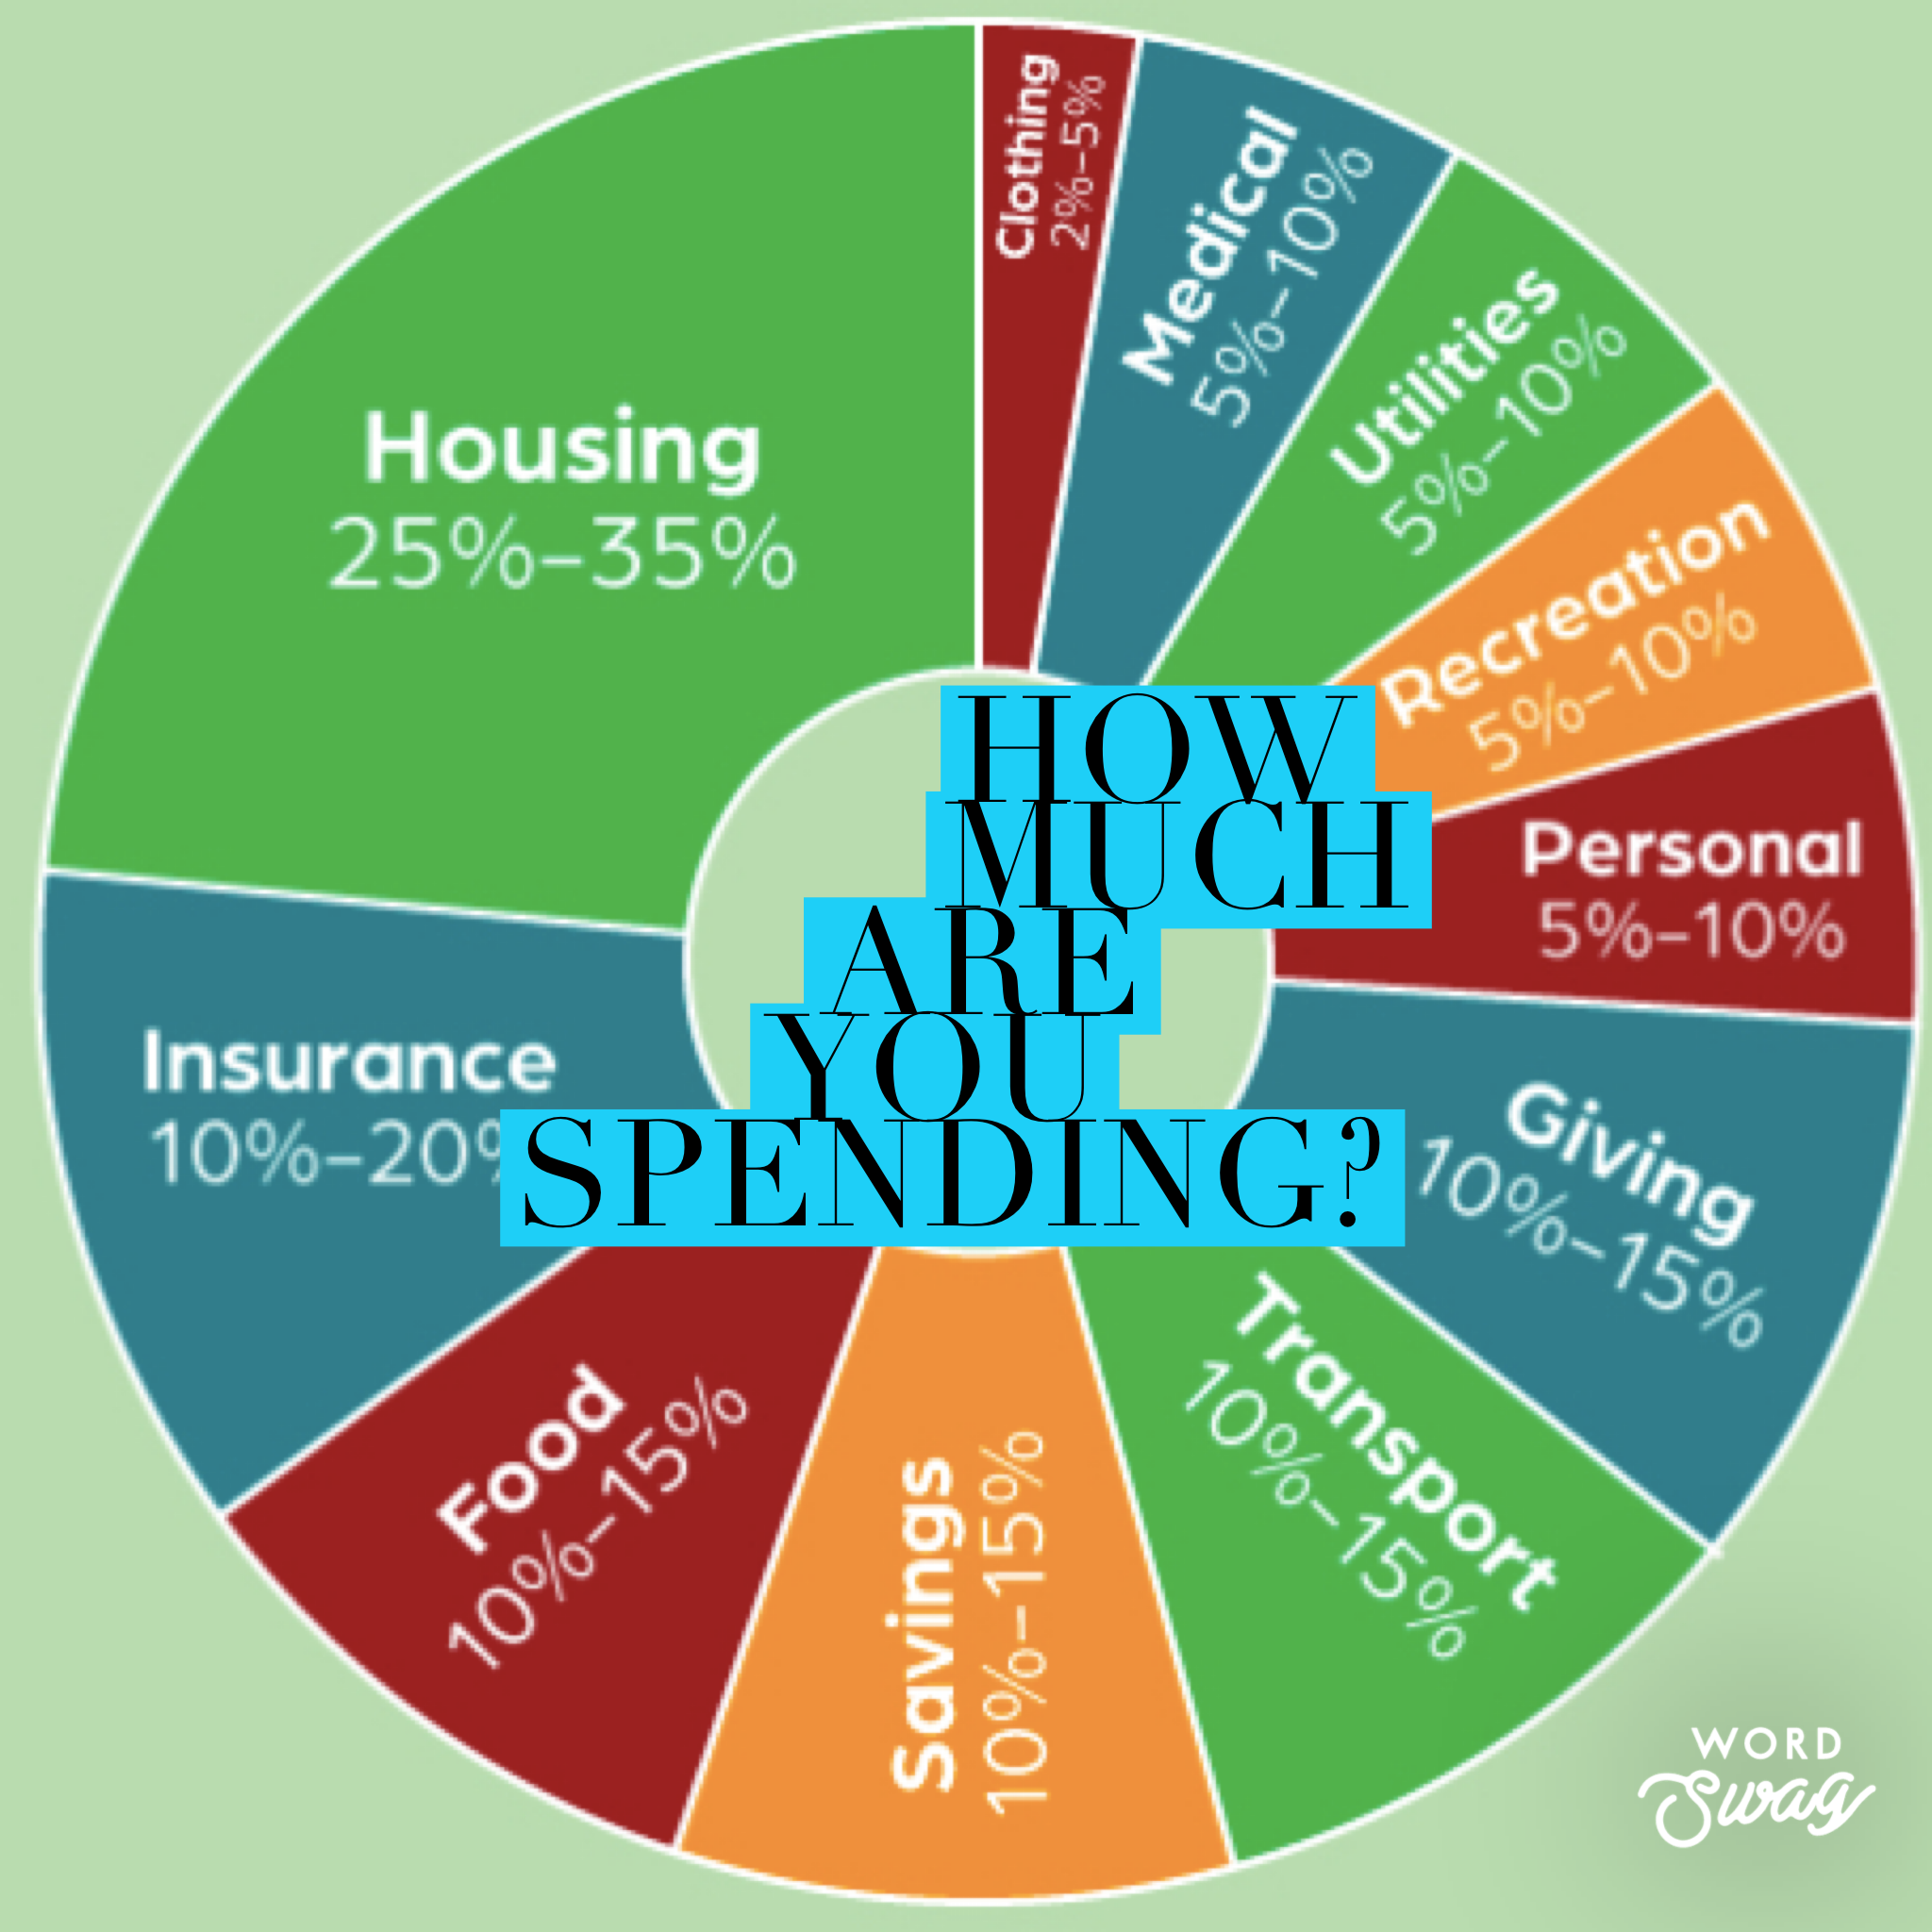 Ideal spending % category wise